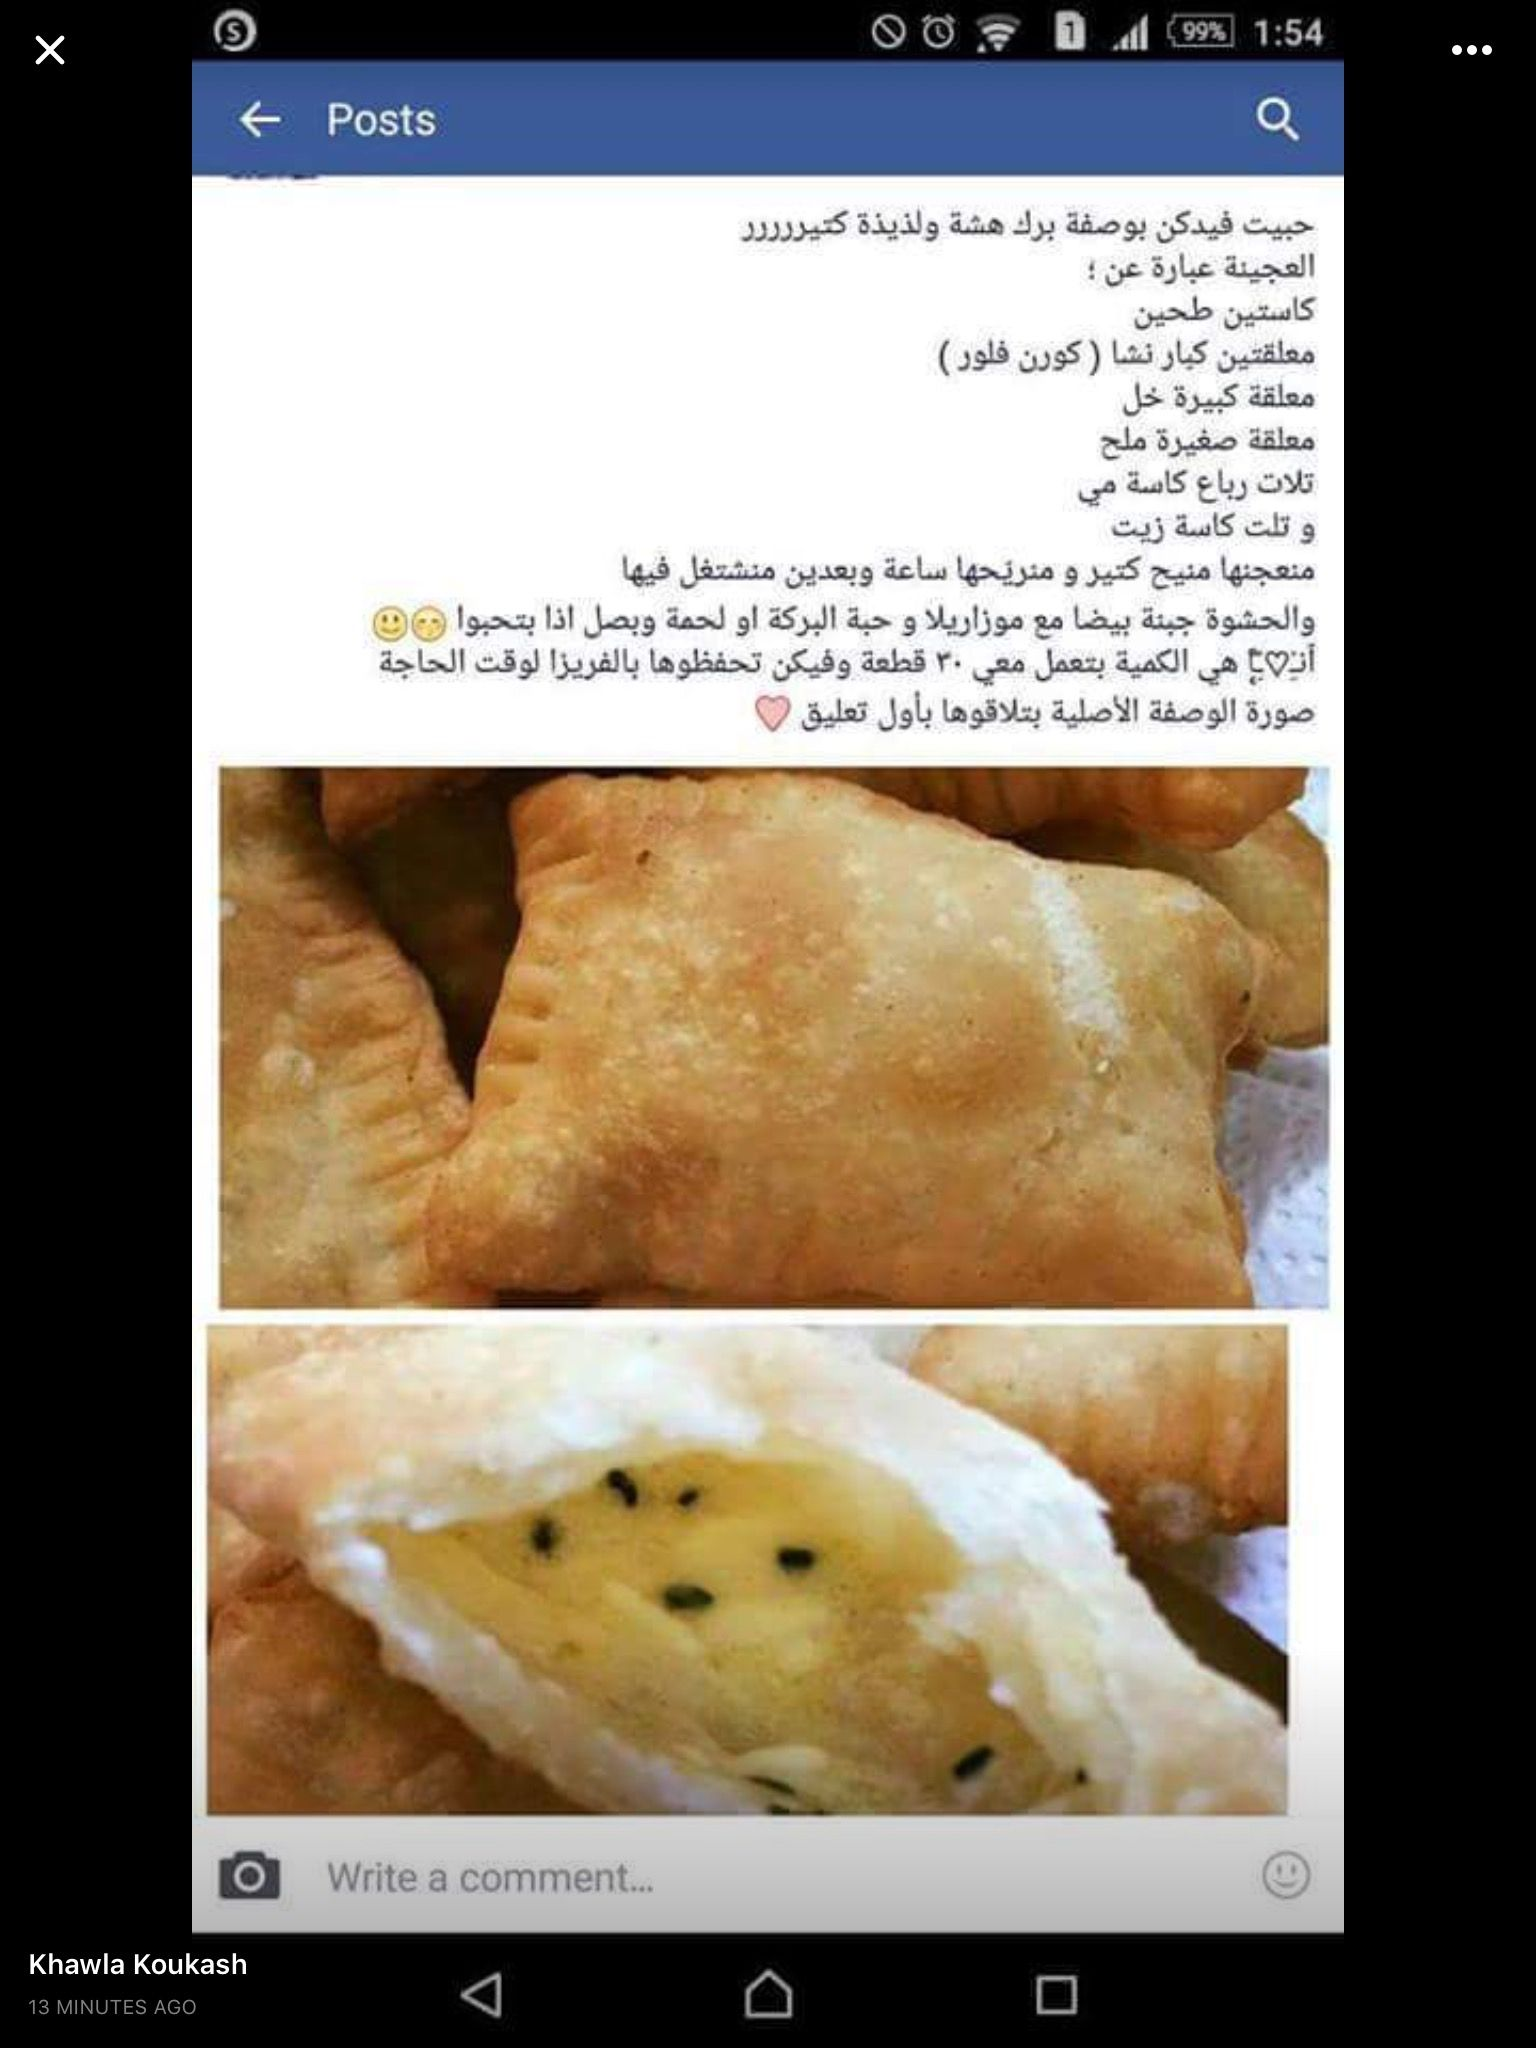 Pin By R H On خبز مناقيش صندويش Food Receipes Recipes Food And Drink